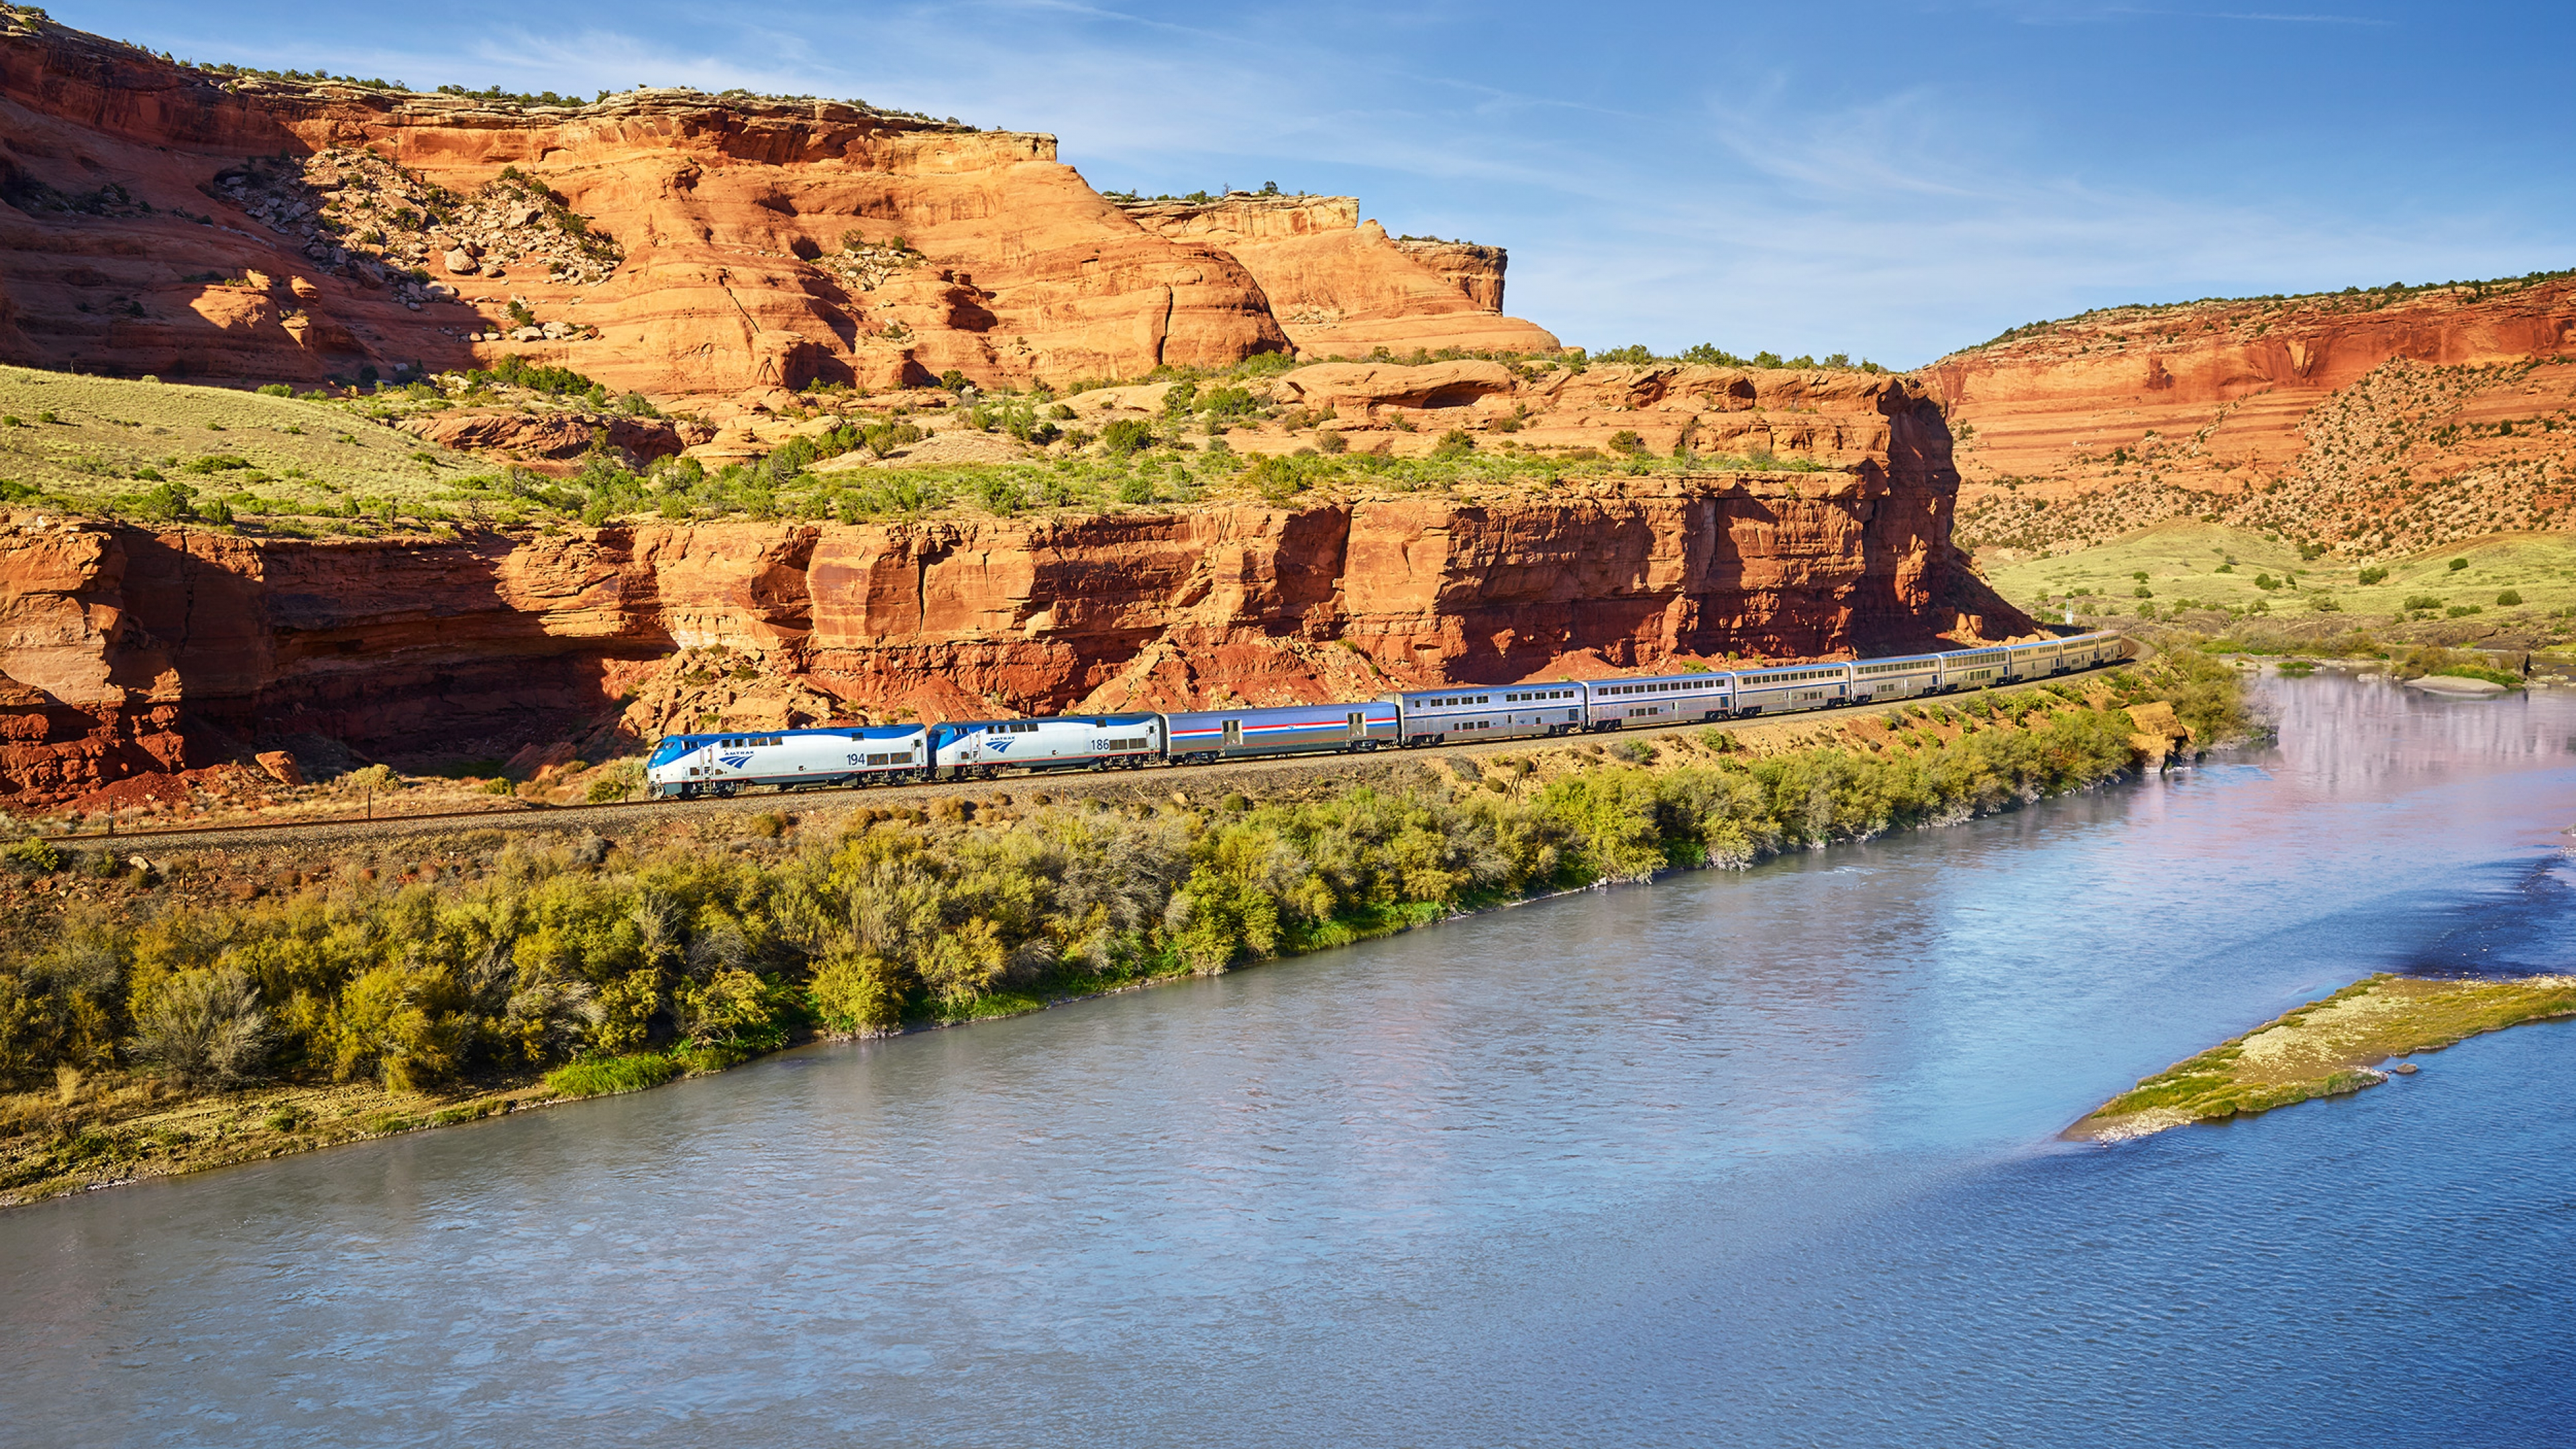 Train chugging alongside a river and red canyon walls.